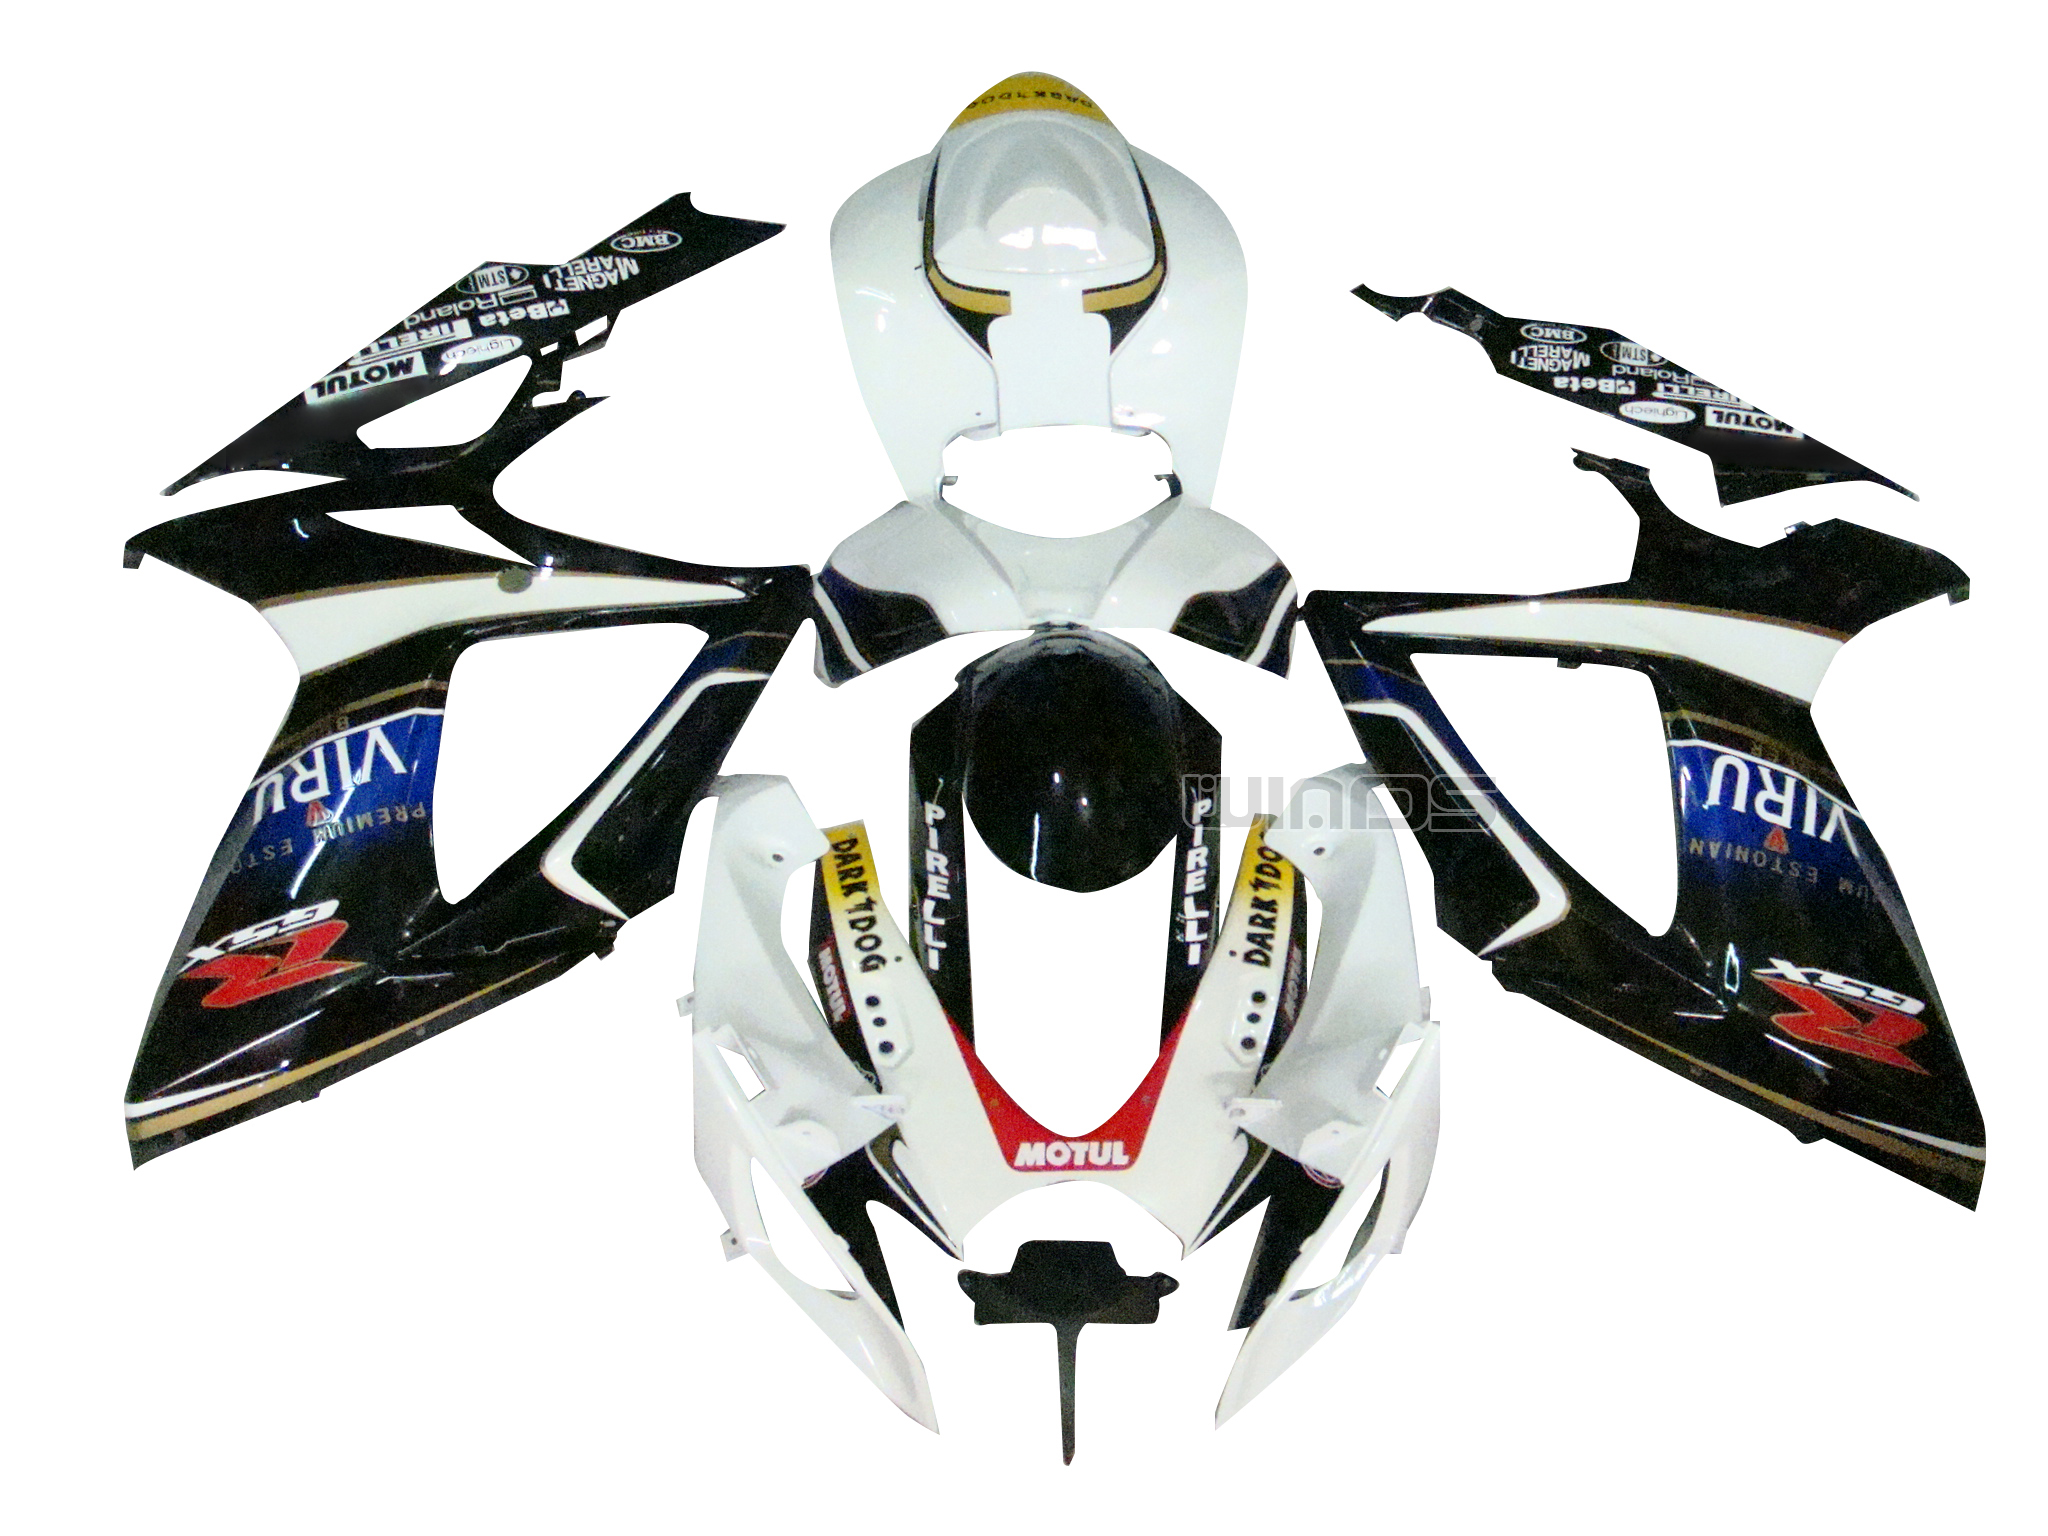 For Suzuki <font><b>GSXR</b></font> <font><b>600</b></font> 750 K6 2006 <font><b>2007</b></font> Injection ABS Bodywork <font><b>Fairing</b></font> Kit Black White image